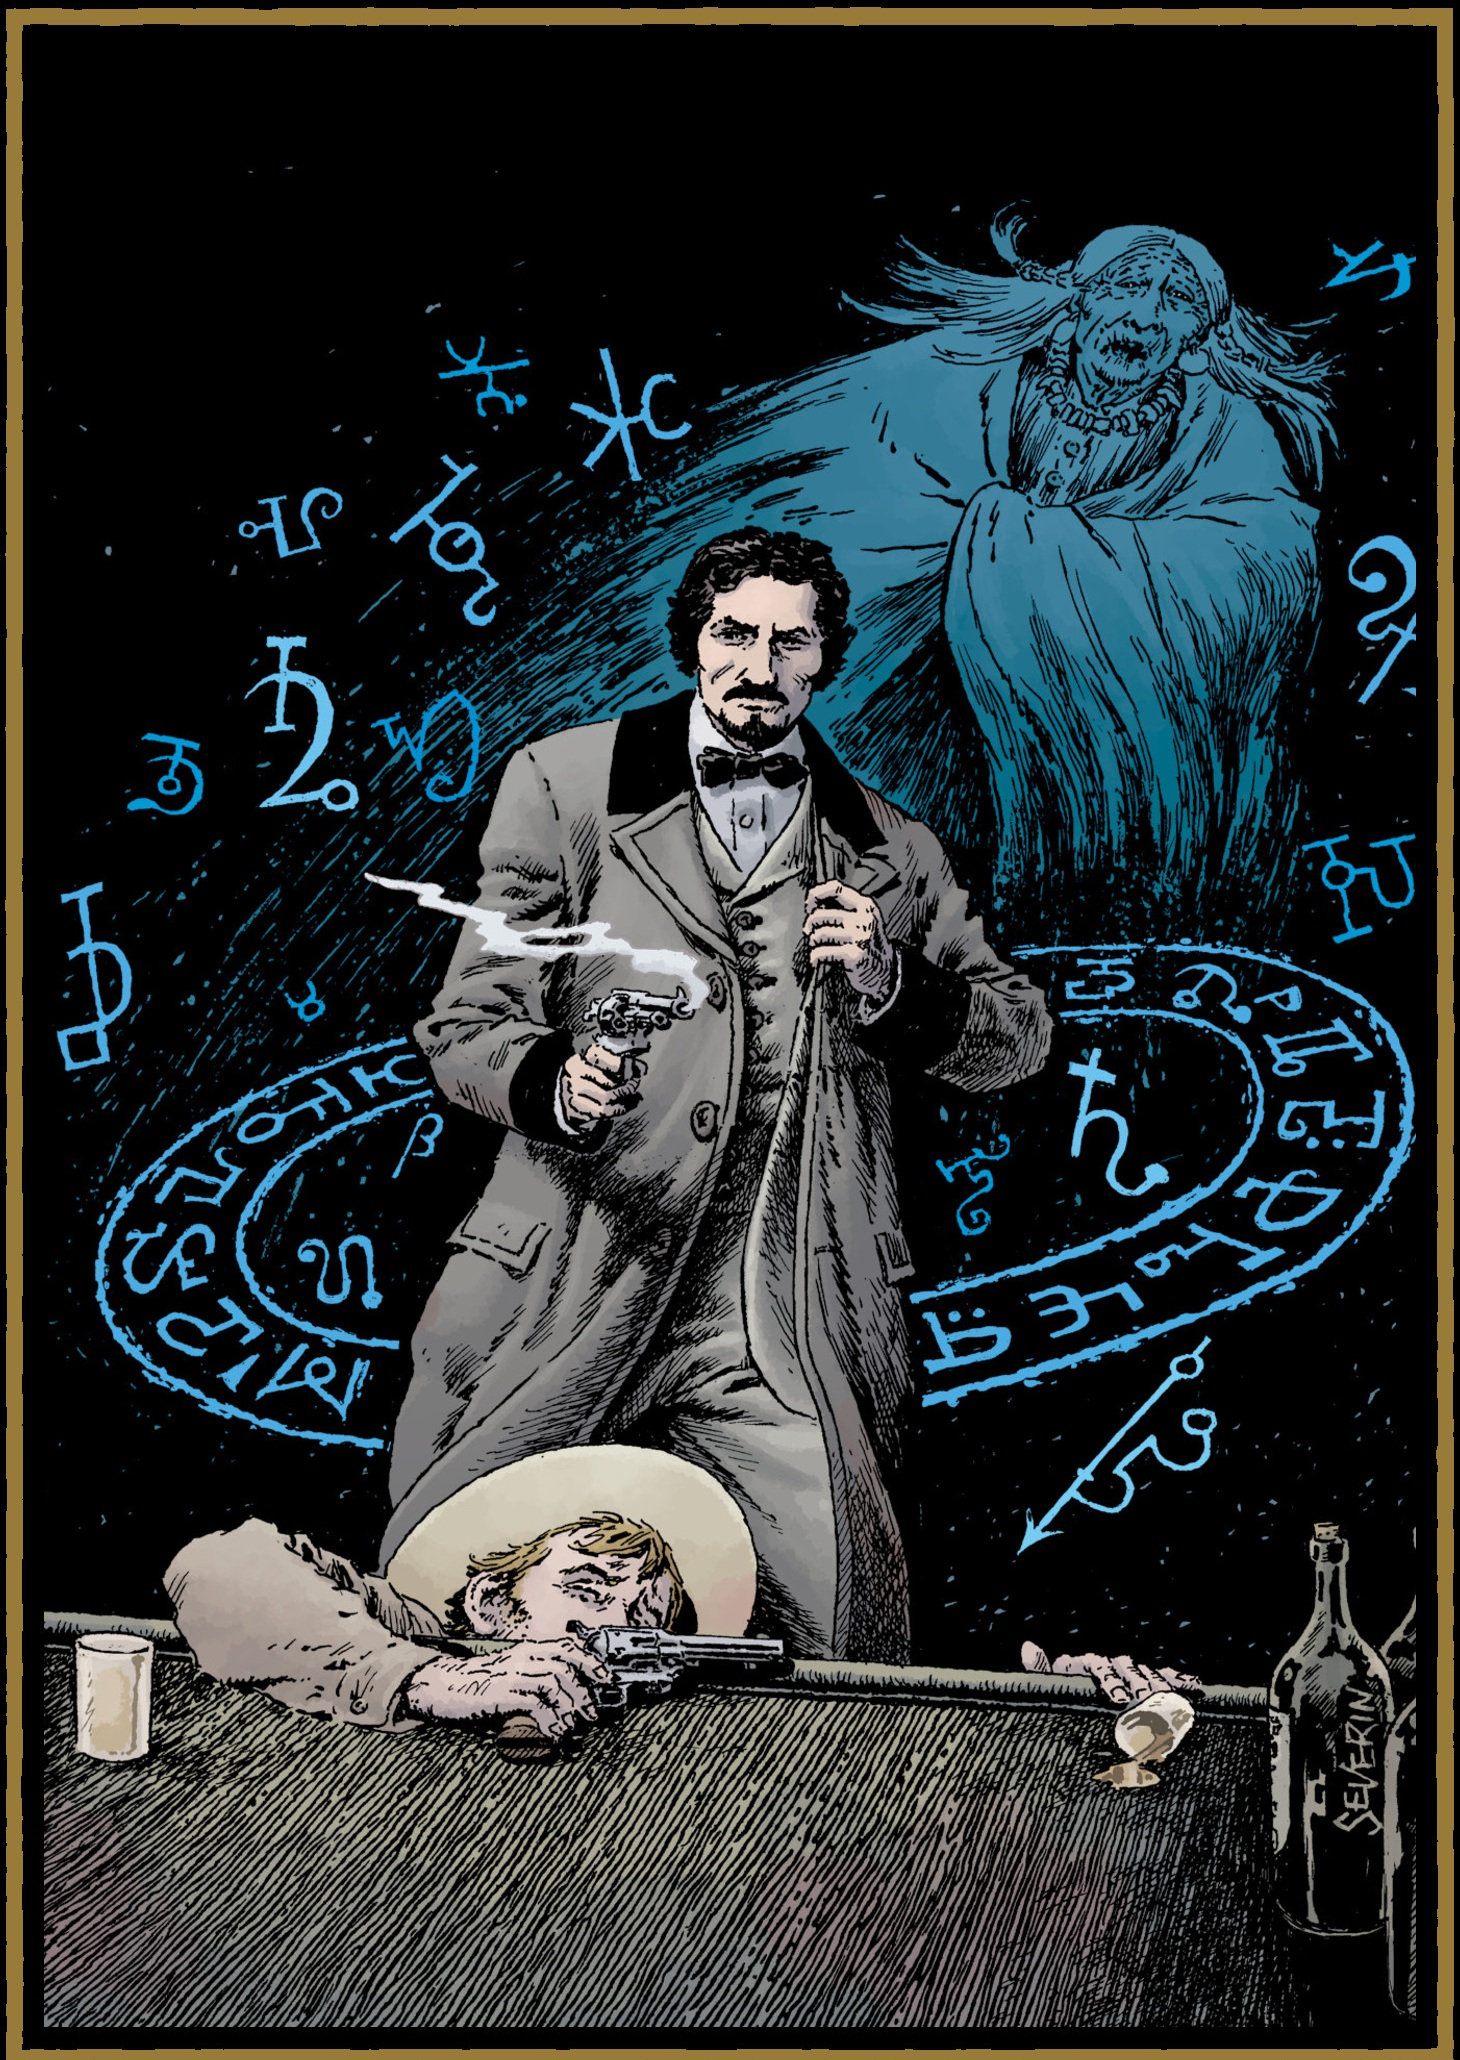 Witchfinder_ Lost and Gone Forever (2011) #1, cover art by John Severin.